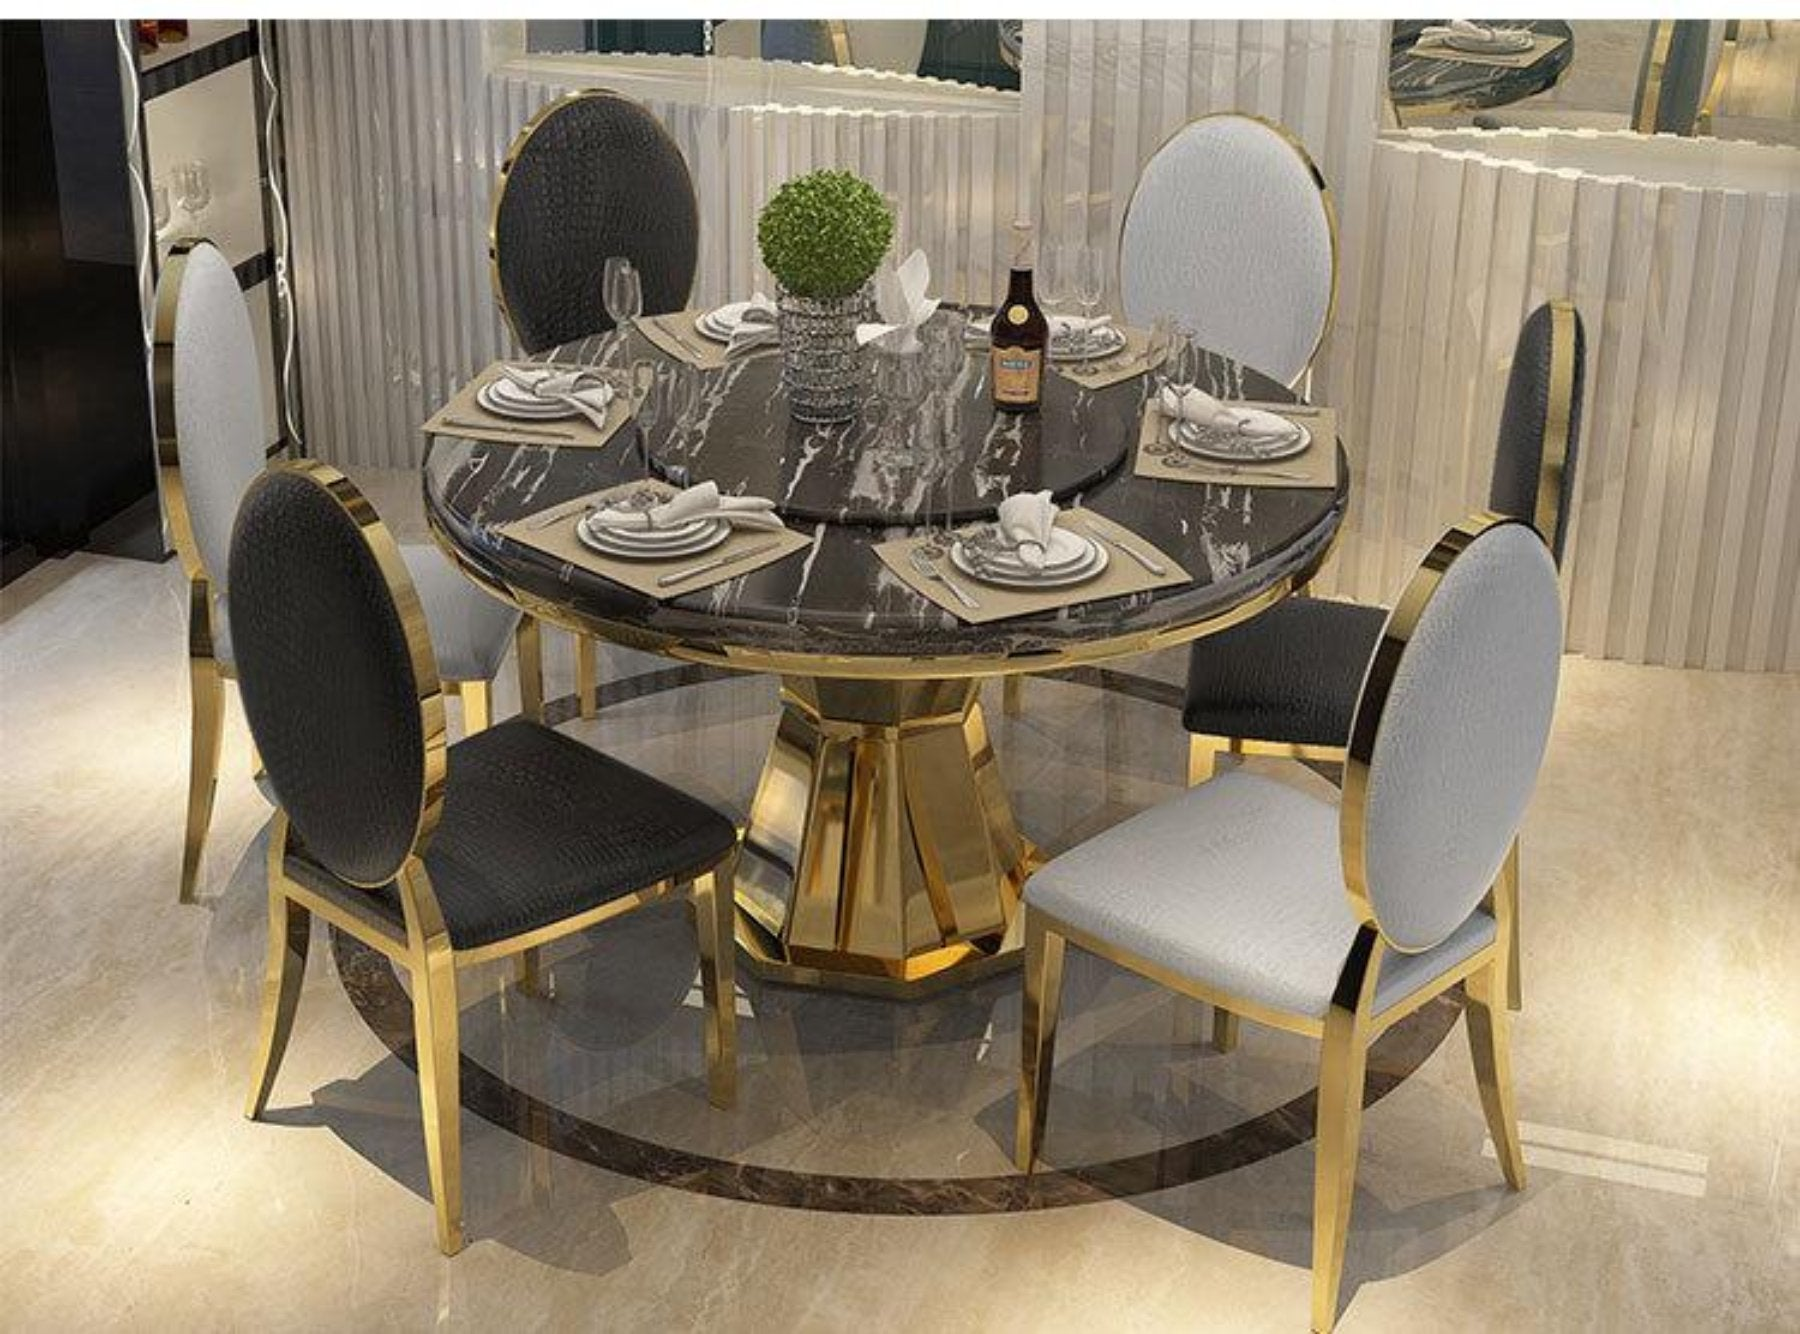 Awesome Golden Round Marble Top Dining Table With Luxury Chairs My Interior Design Ideas Truasarkarijobsexamcom